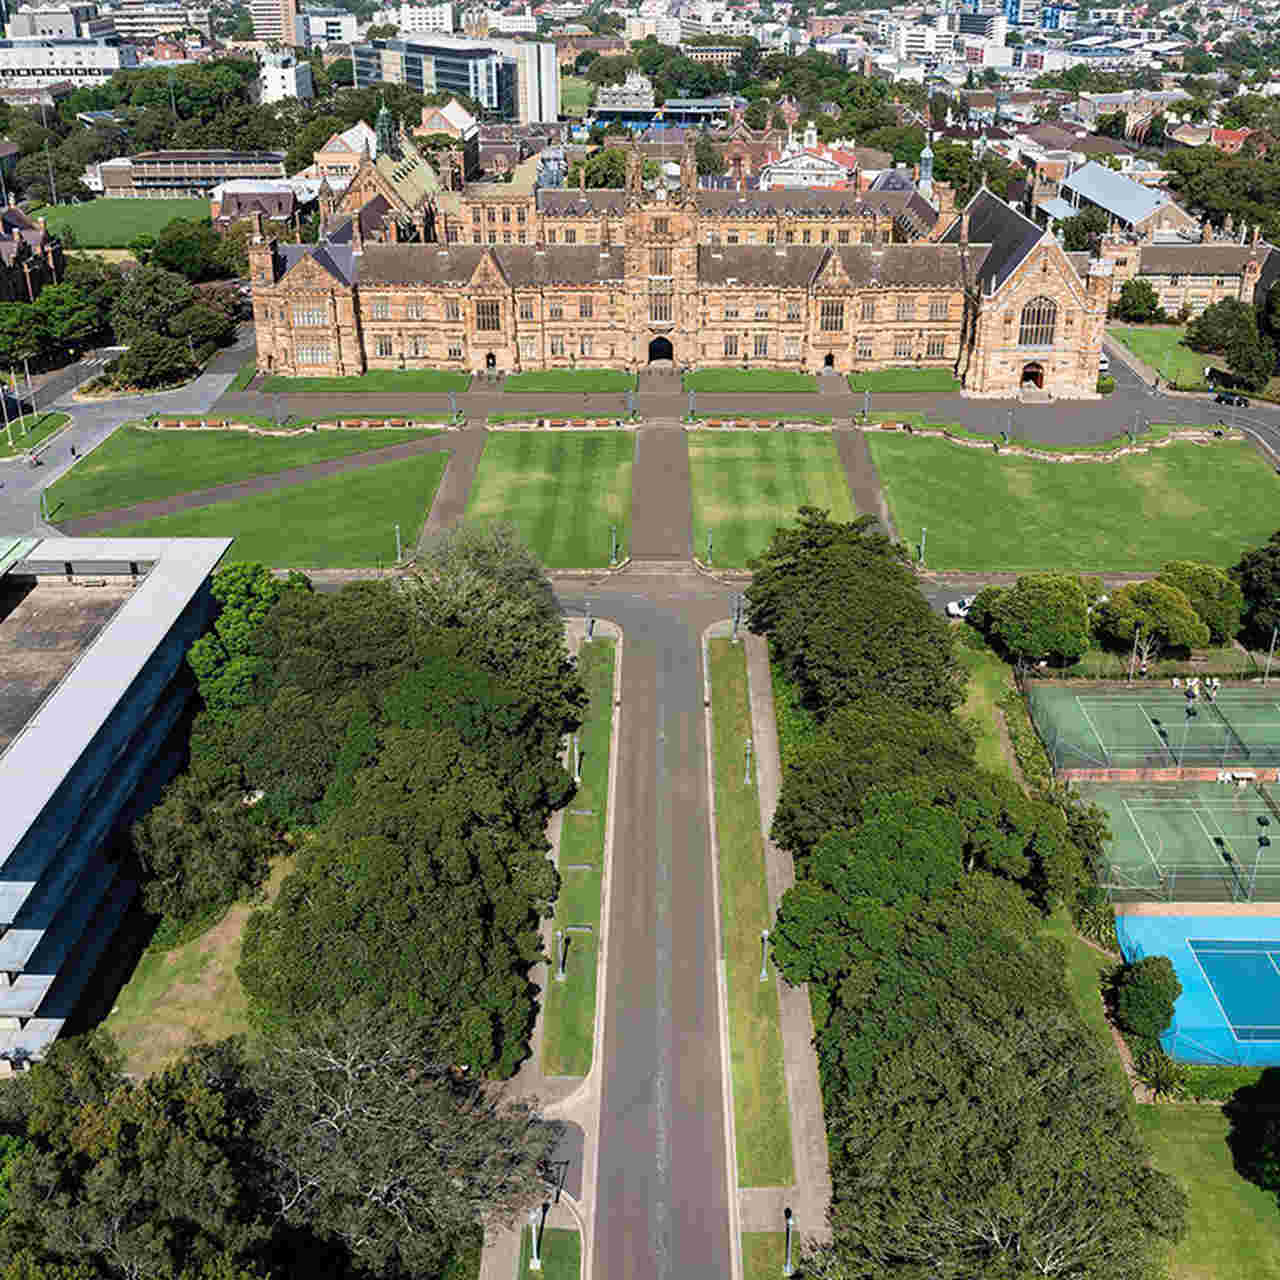 Architecture, Landmark, Aerial photography, Bird's-eye view, Building, Urban design, Landscape, City, Urban area, Tree, Garden, Grass, Plant, Photography, The University of Sydney, UNSW Sydney, University, Times Higher Education World University Rankings